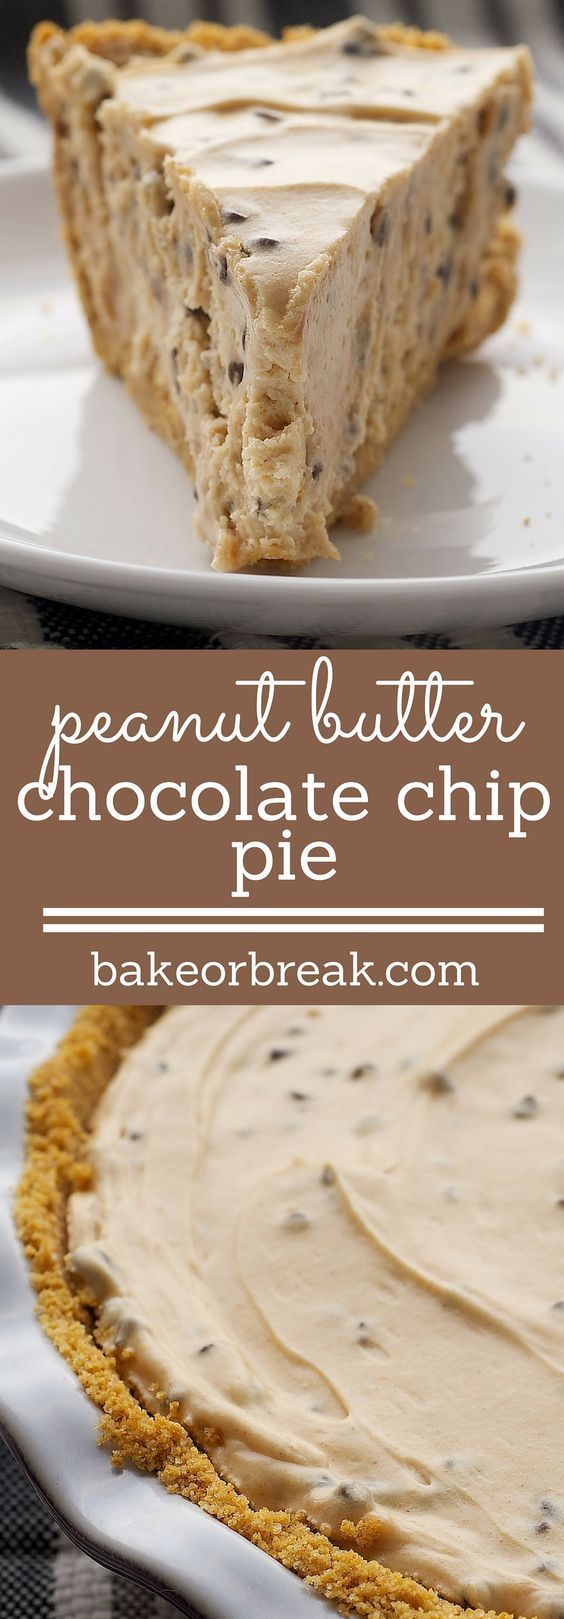 Peanut Butter-Chocolate Chip Pie is a cool creamy dessert featuring everyone's favorite flavor combination. -